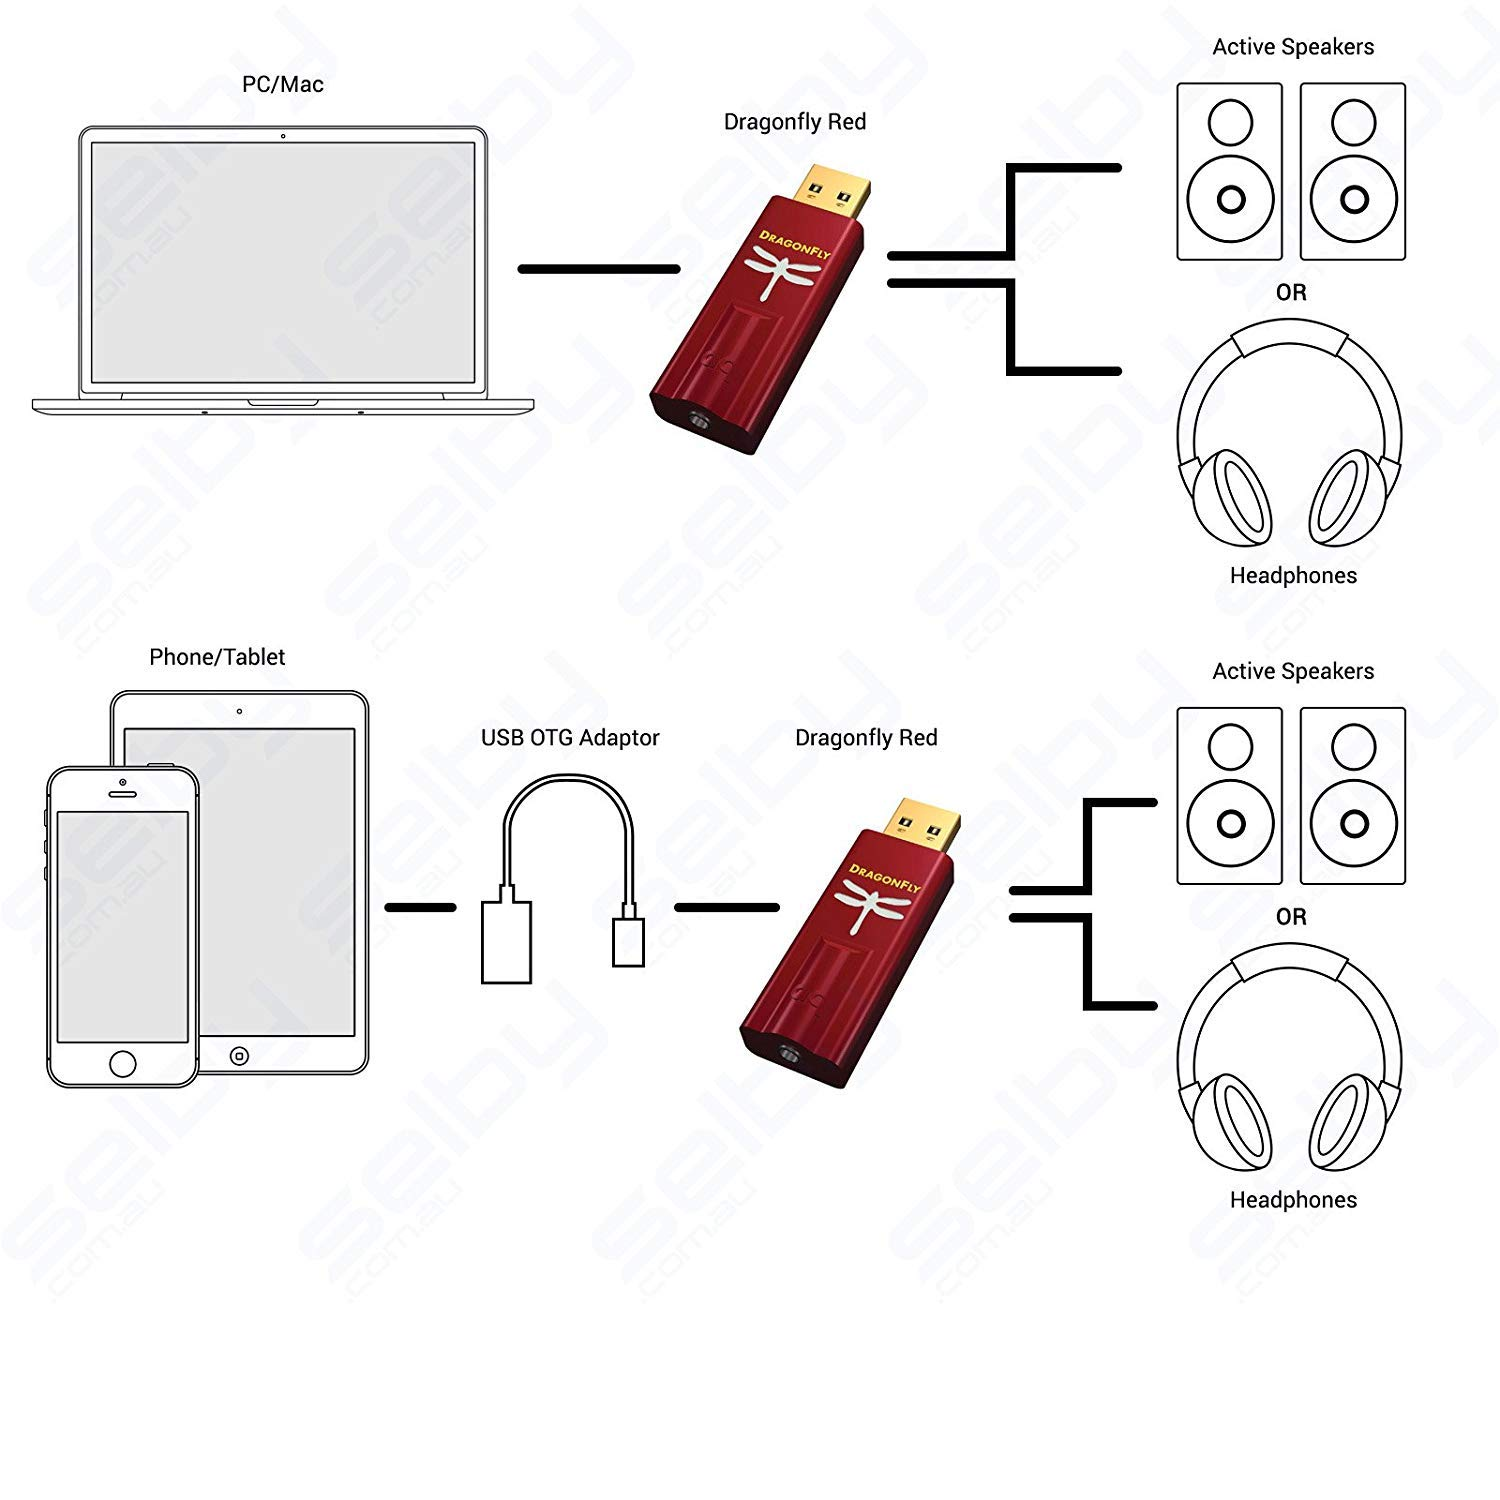 Audioquest Dragonfly Dac Usb Digital Audio Converter Red Amazon Lockin Amplifier Model 186a For Sale Electroniccircuitsdiagrams Tv